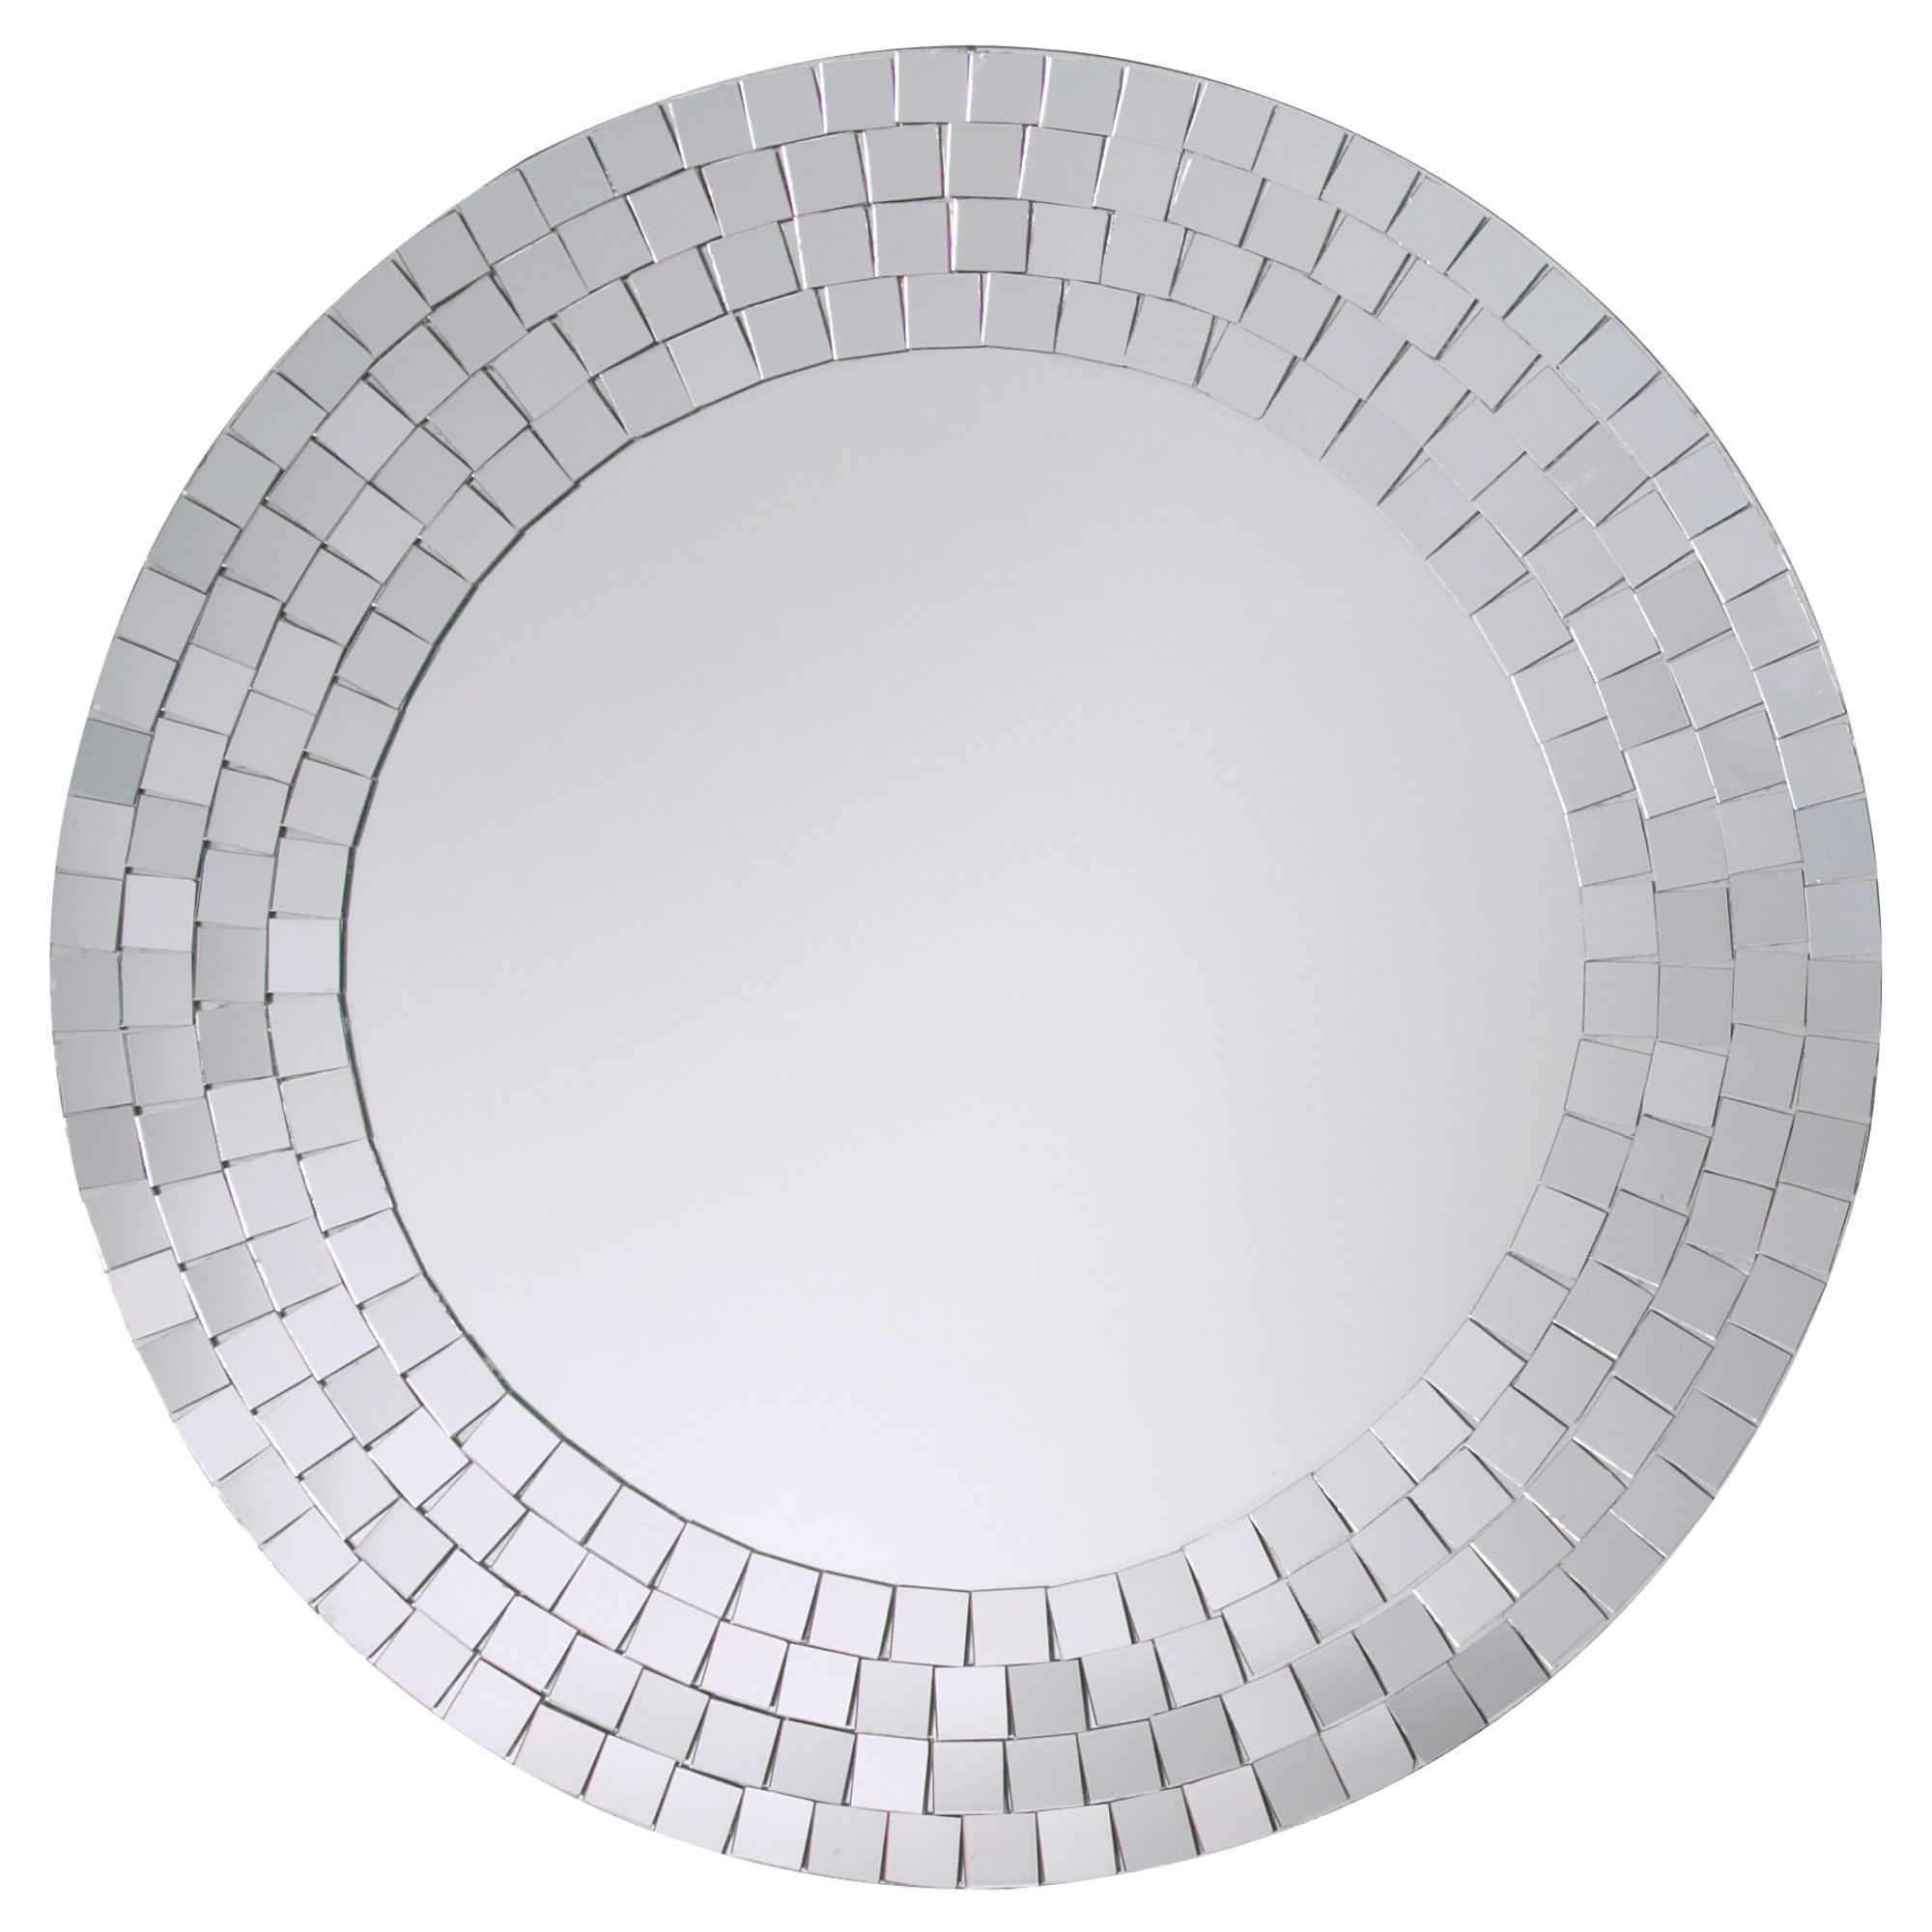 Ikea Tranby Mirror Mirror Glass 2999 Mirrors Ideas Pinterest